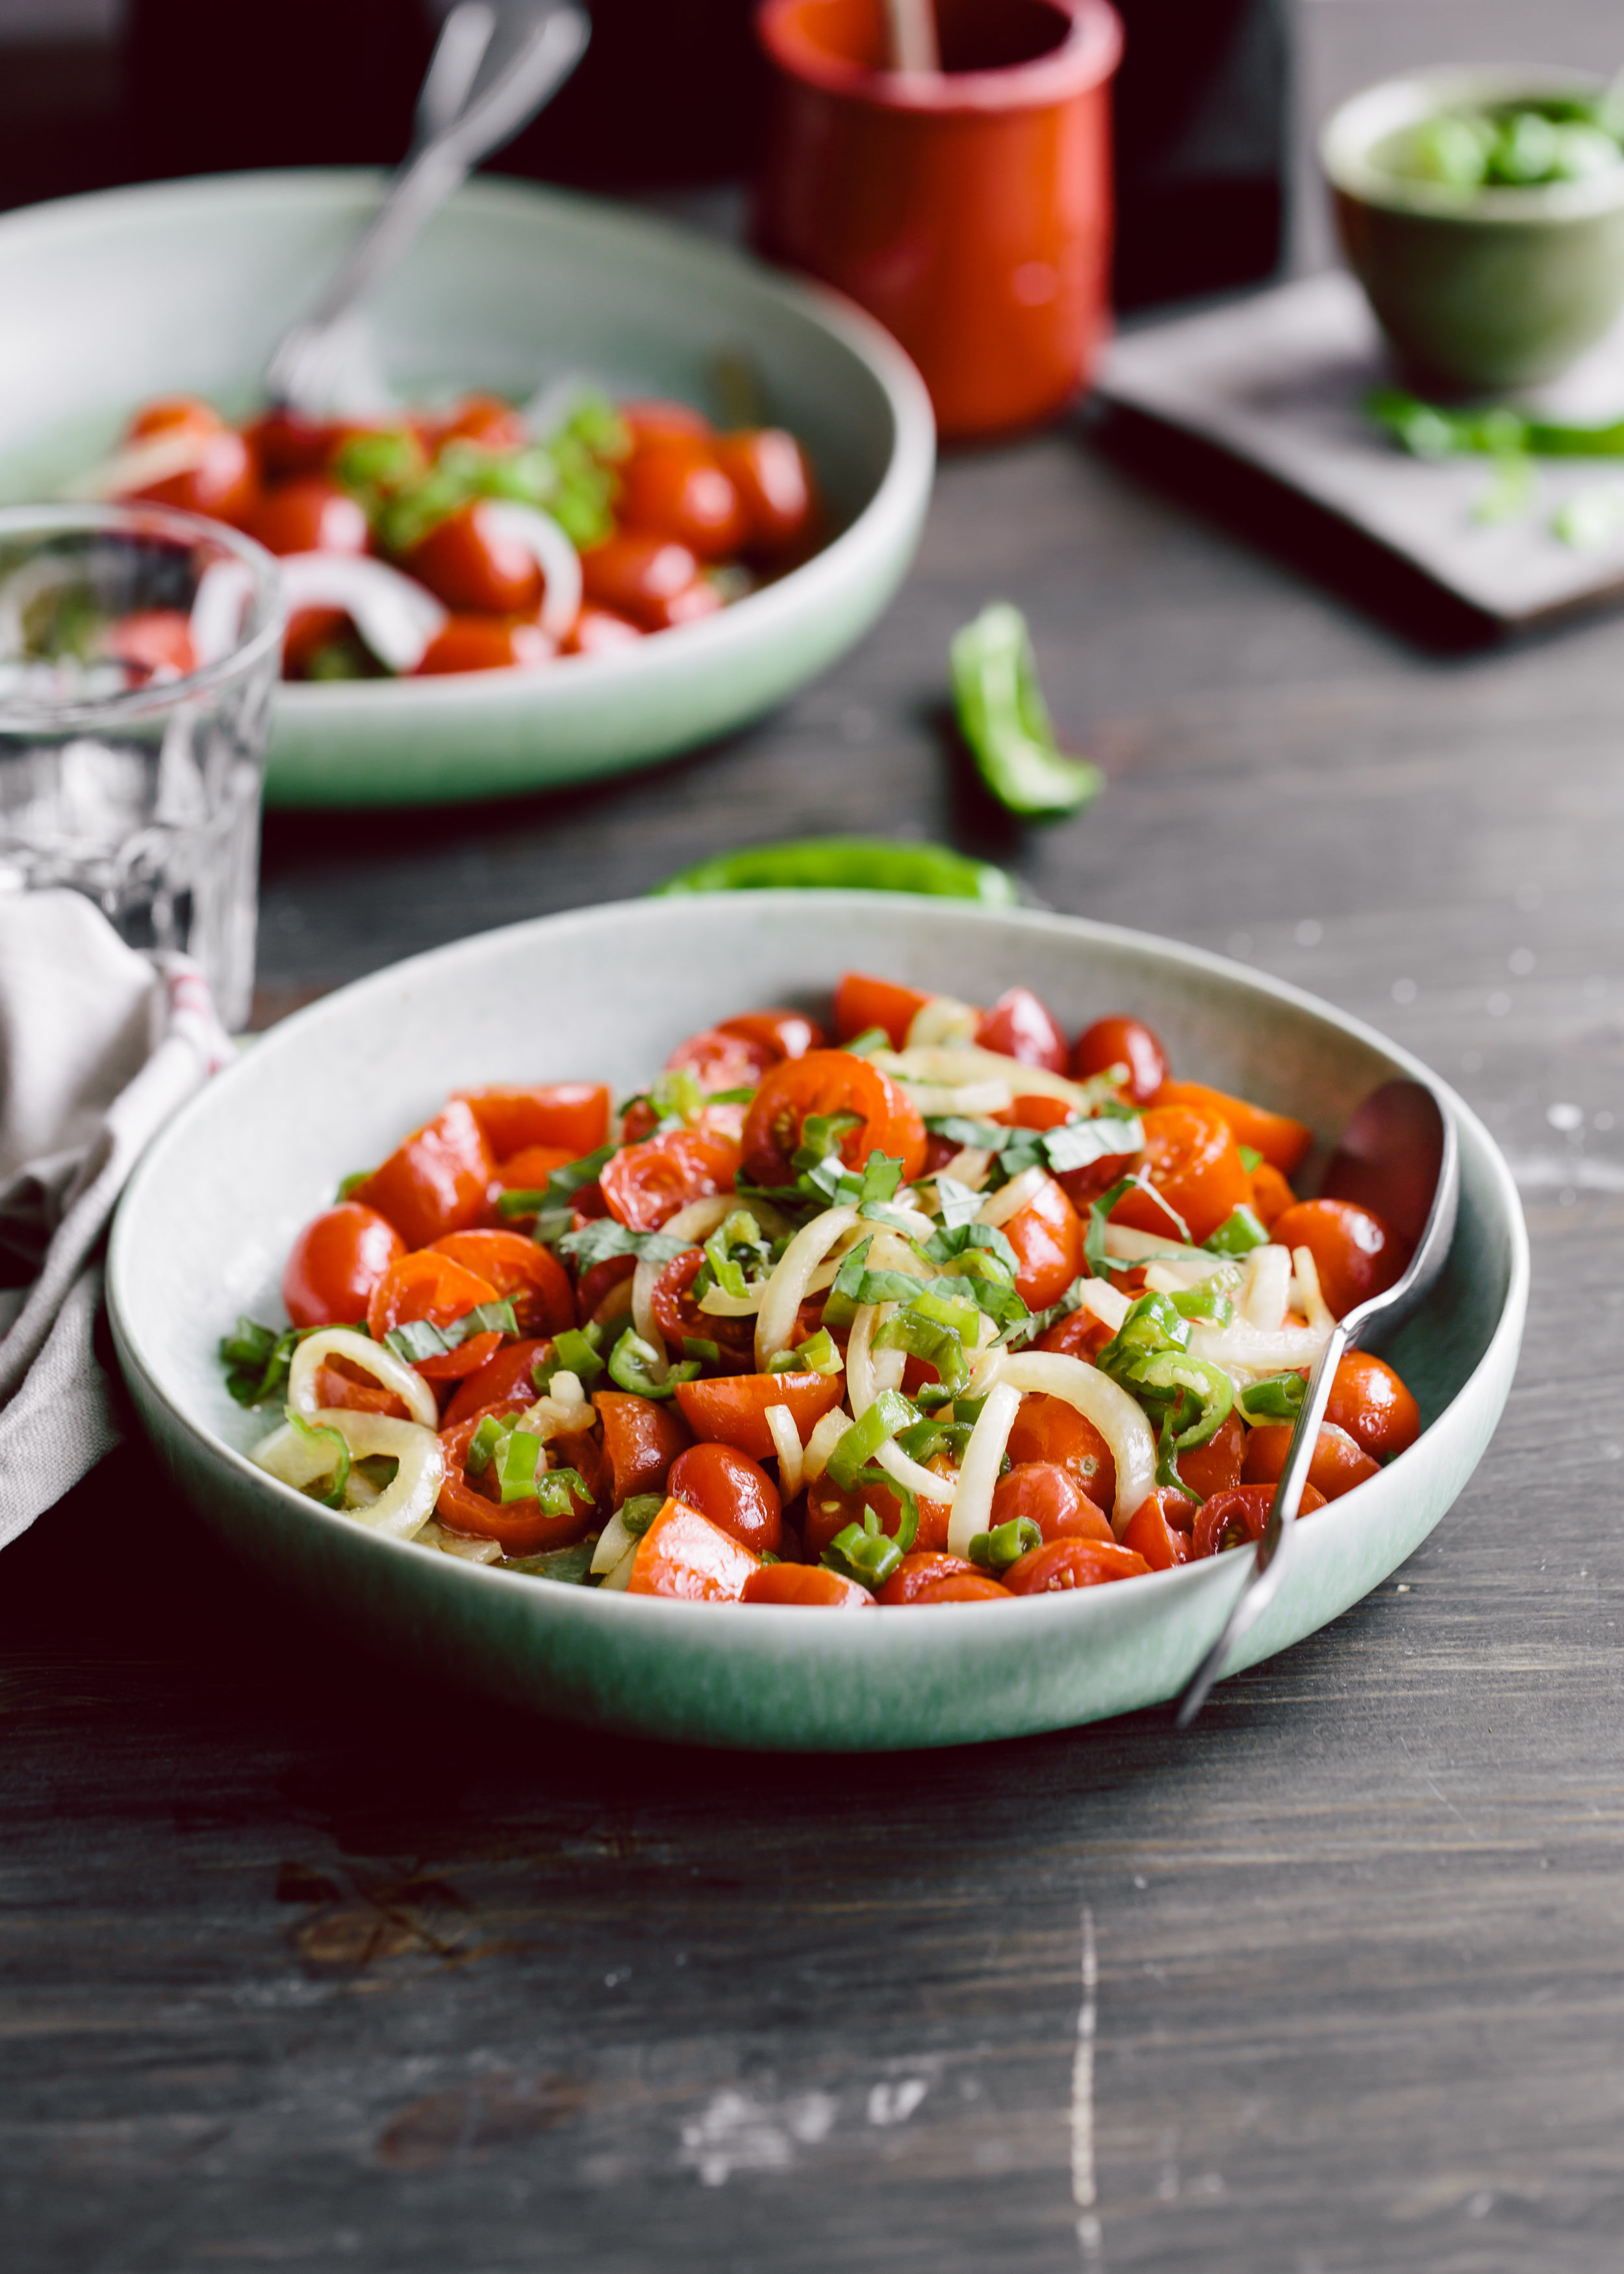 Tomato, Onion and Green Pepper Salad with Shiso